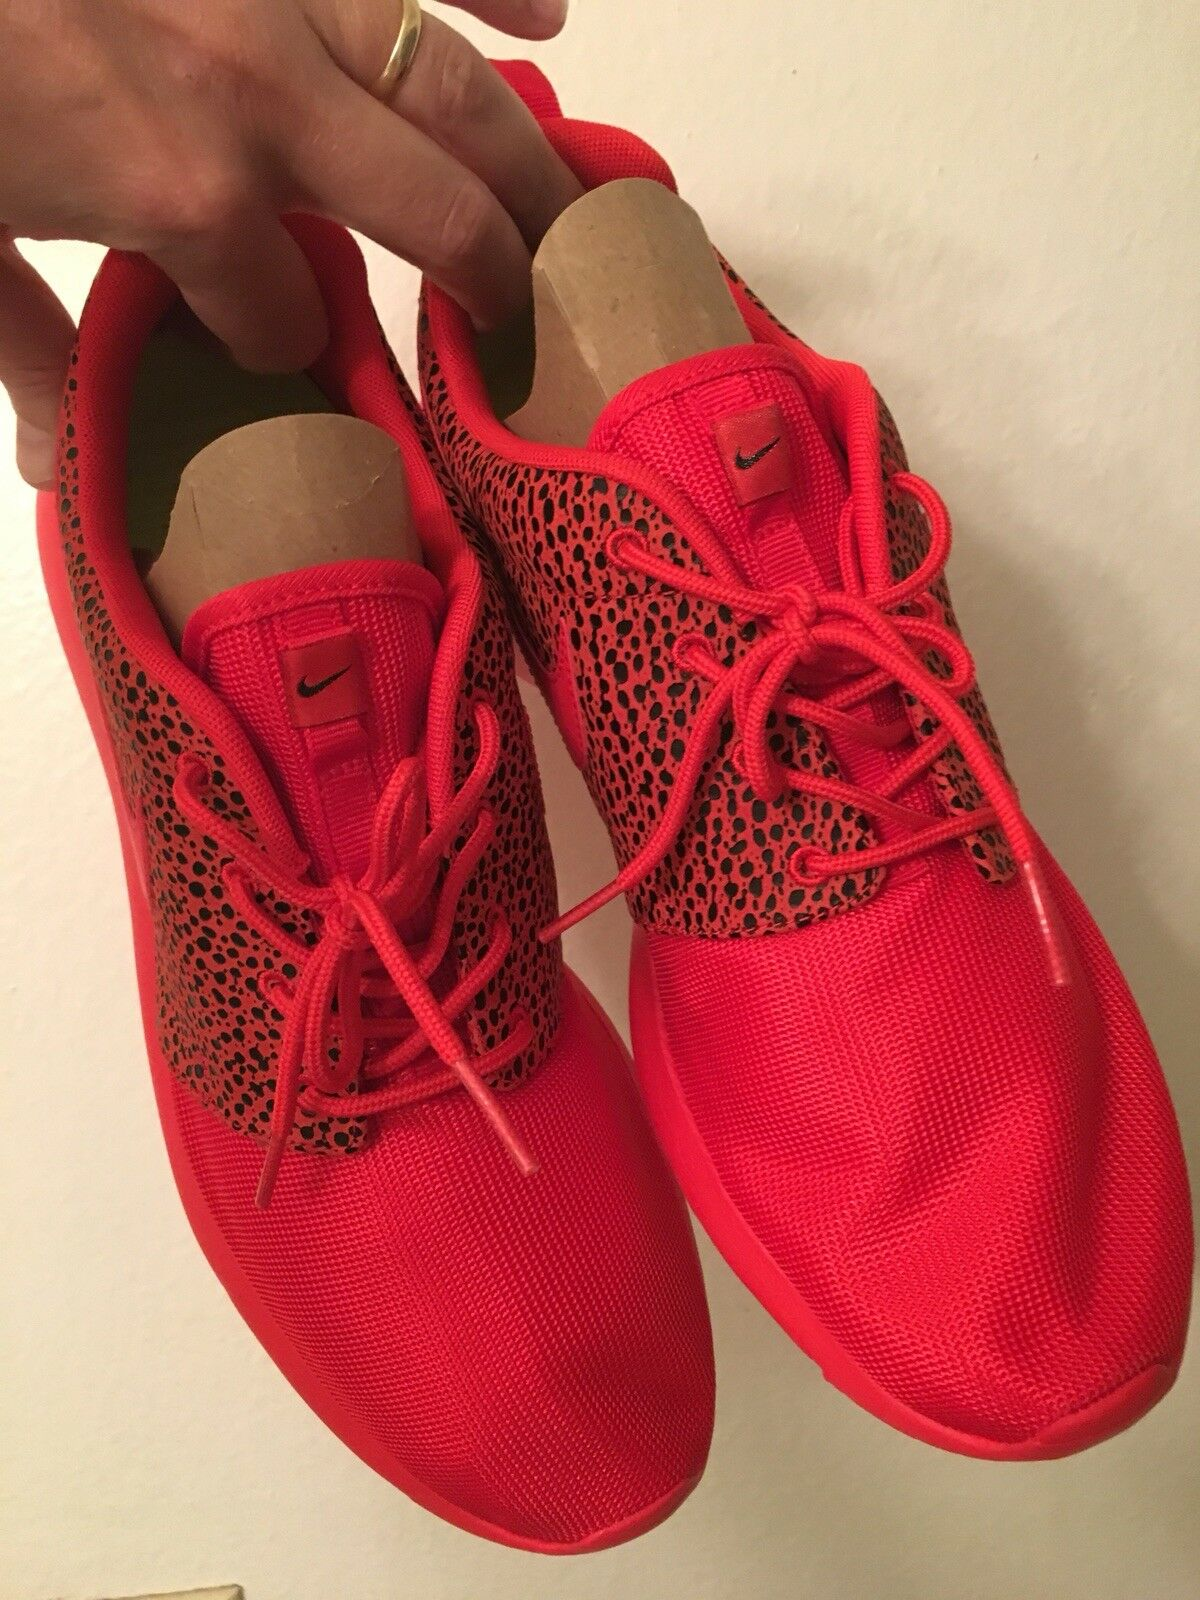 Run Roshe Safari Challenge Yeezy October Red 7d0dbrehj22868